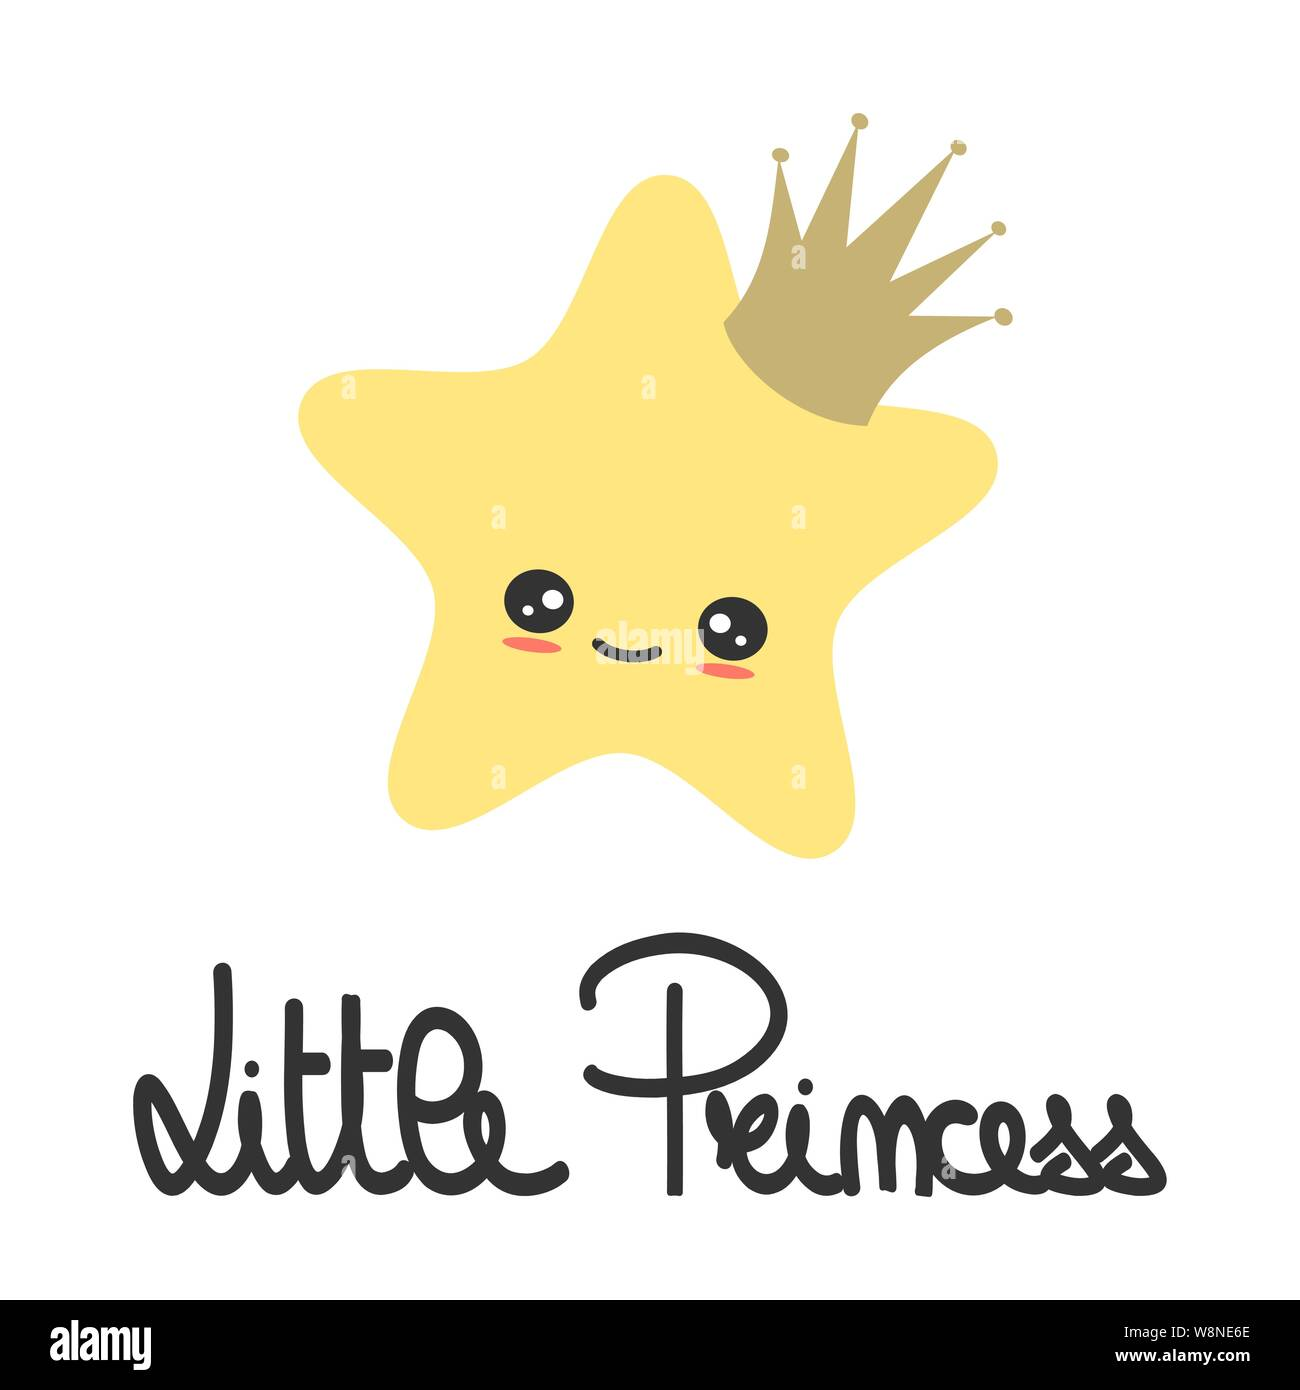 Cute Hand Drawn Lettering Little Princess Slogan With Cartoon Star With Crown Vector Illustration For Kids Poster And Baby Room Decor Stock Vector Image Art Alamy Check out our crown cartoon selection for the very best in unique or custom, handmade pieces well you're in luck, because here they come. https www alamy com cute hand drawn lettering little princess slogan with cartoon star with crown vector illustration for kids poster and baby room decor image263544918 html